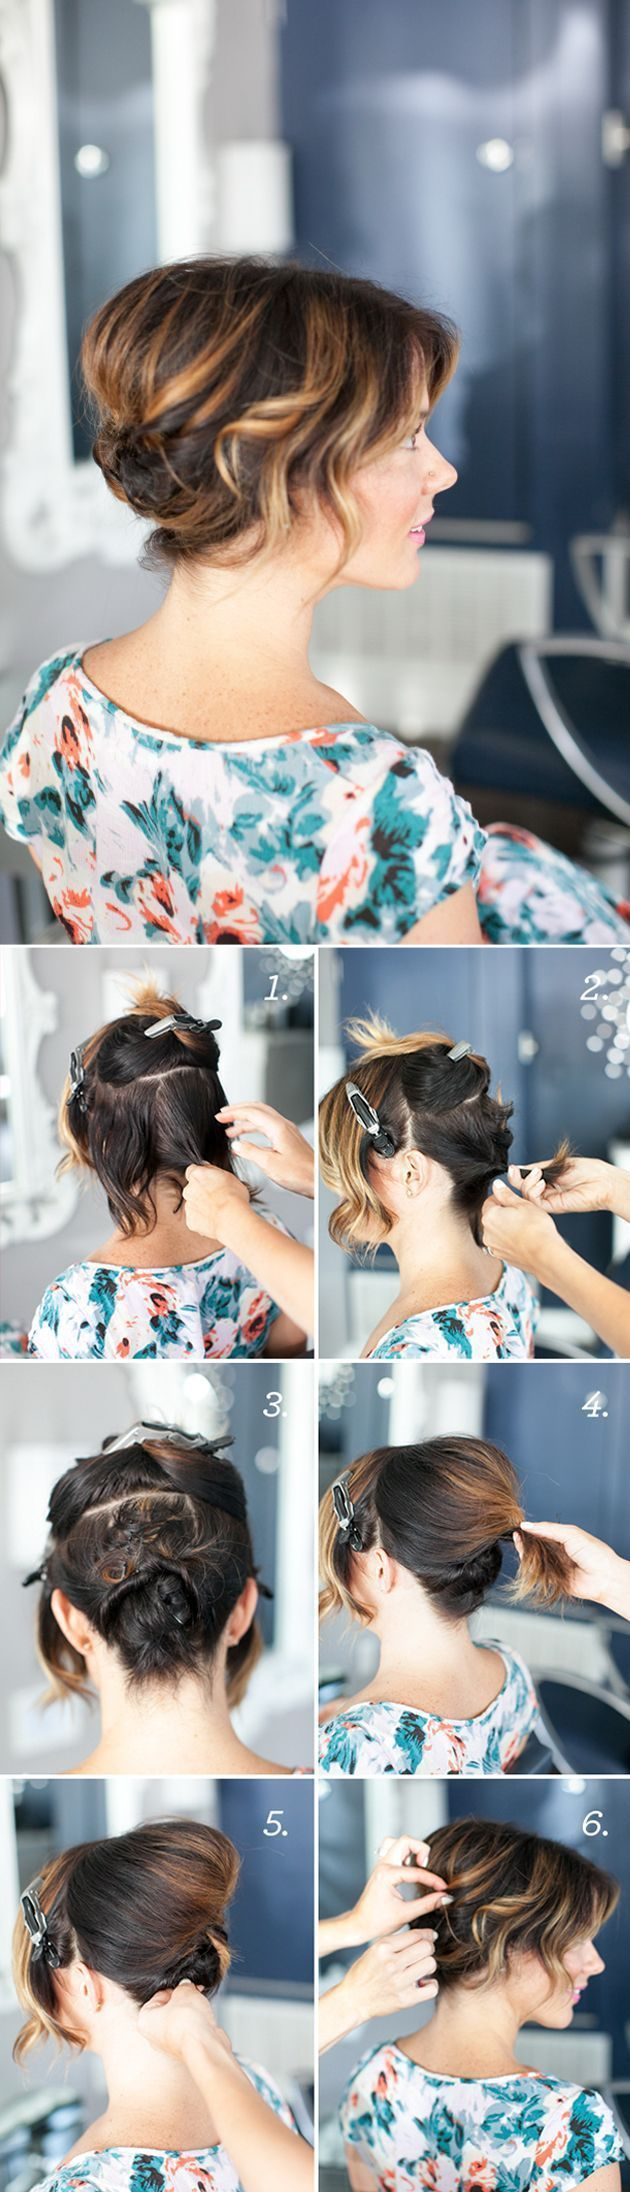 best hair for wedding images on pinterest updos bridal